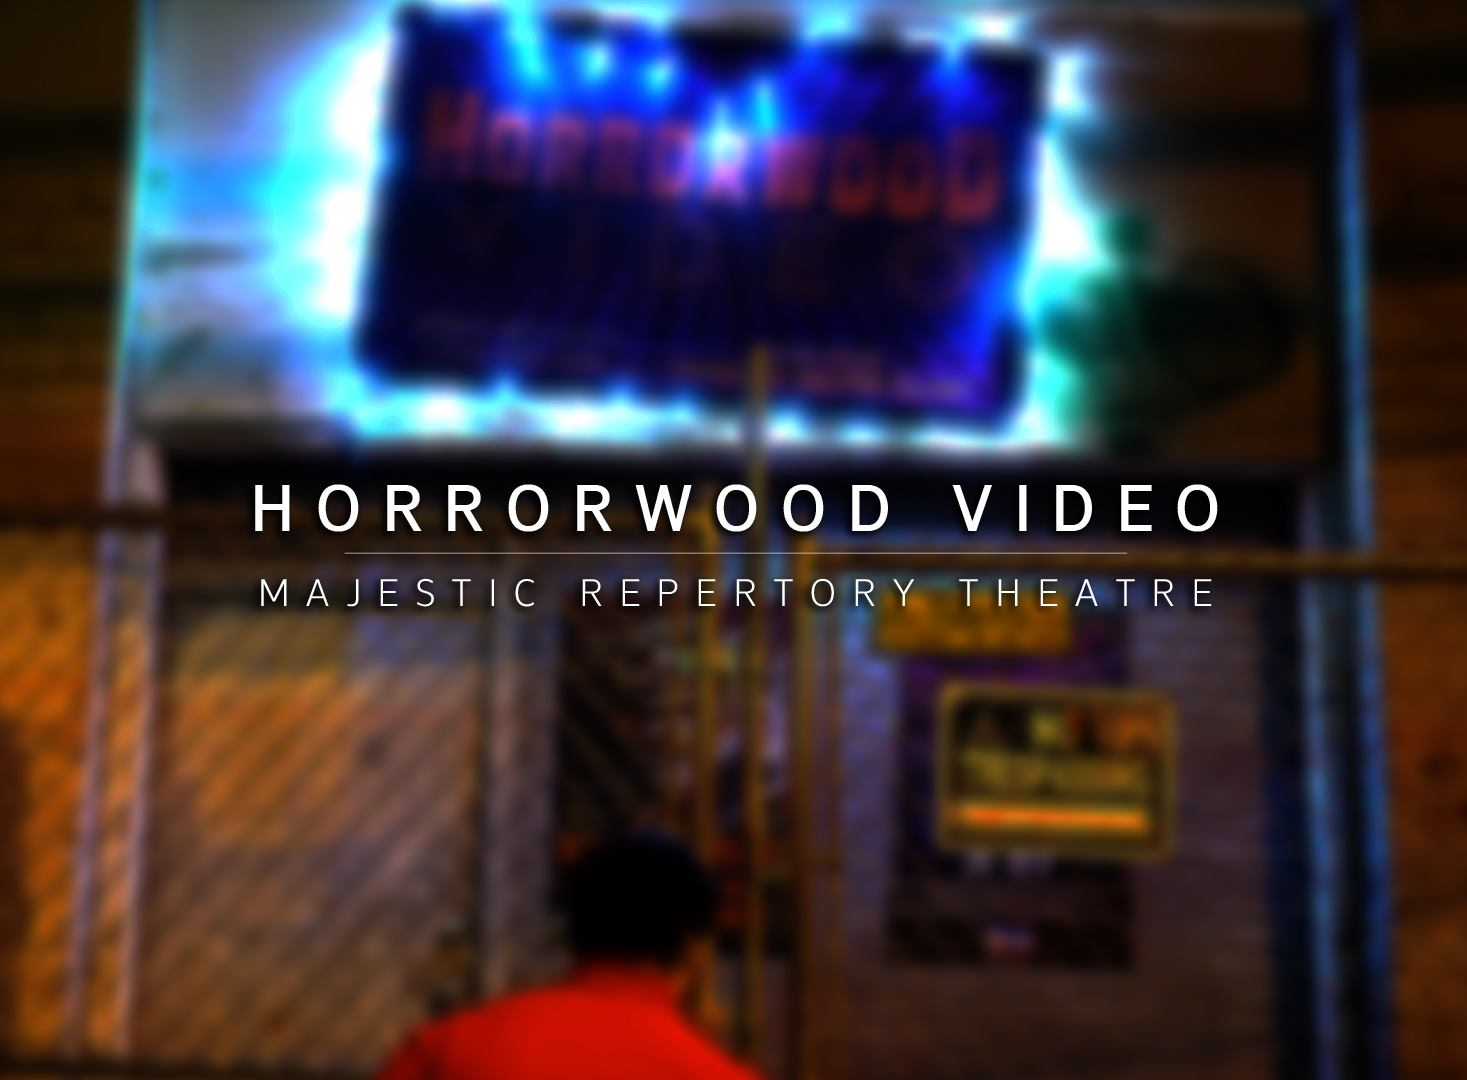 Horrorwood Video | Majestic Repertory Theatre